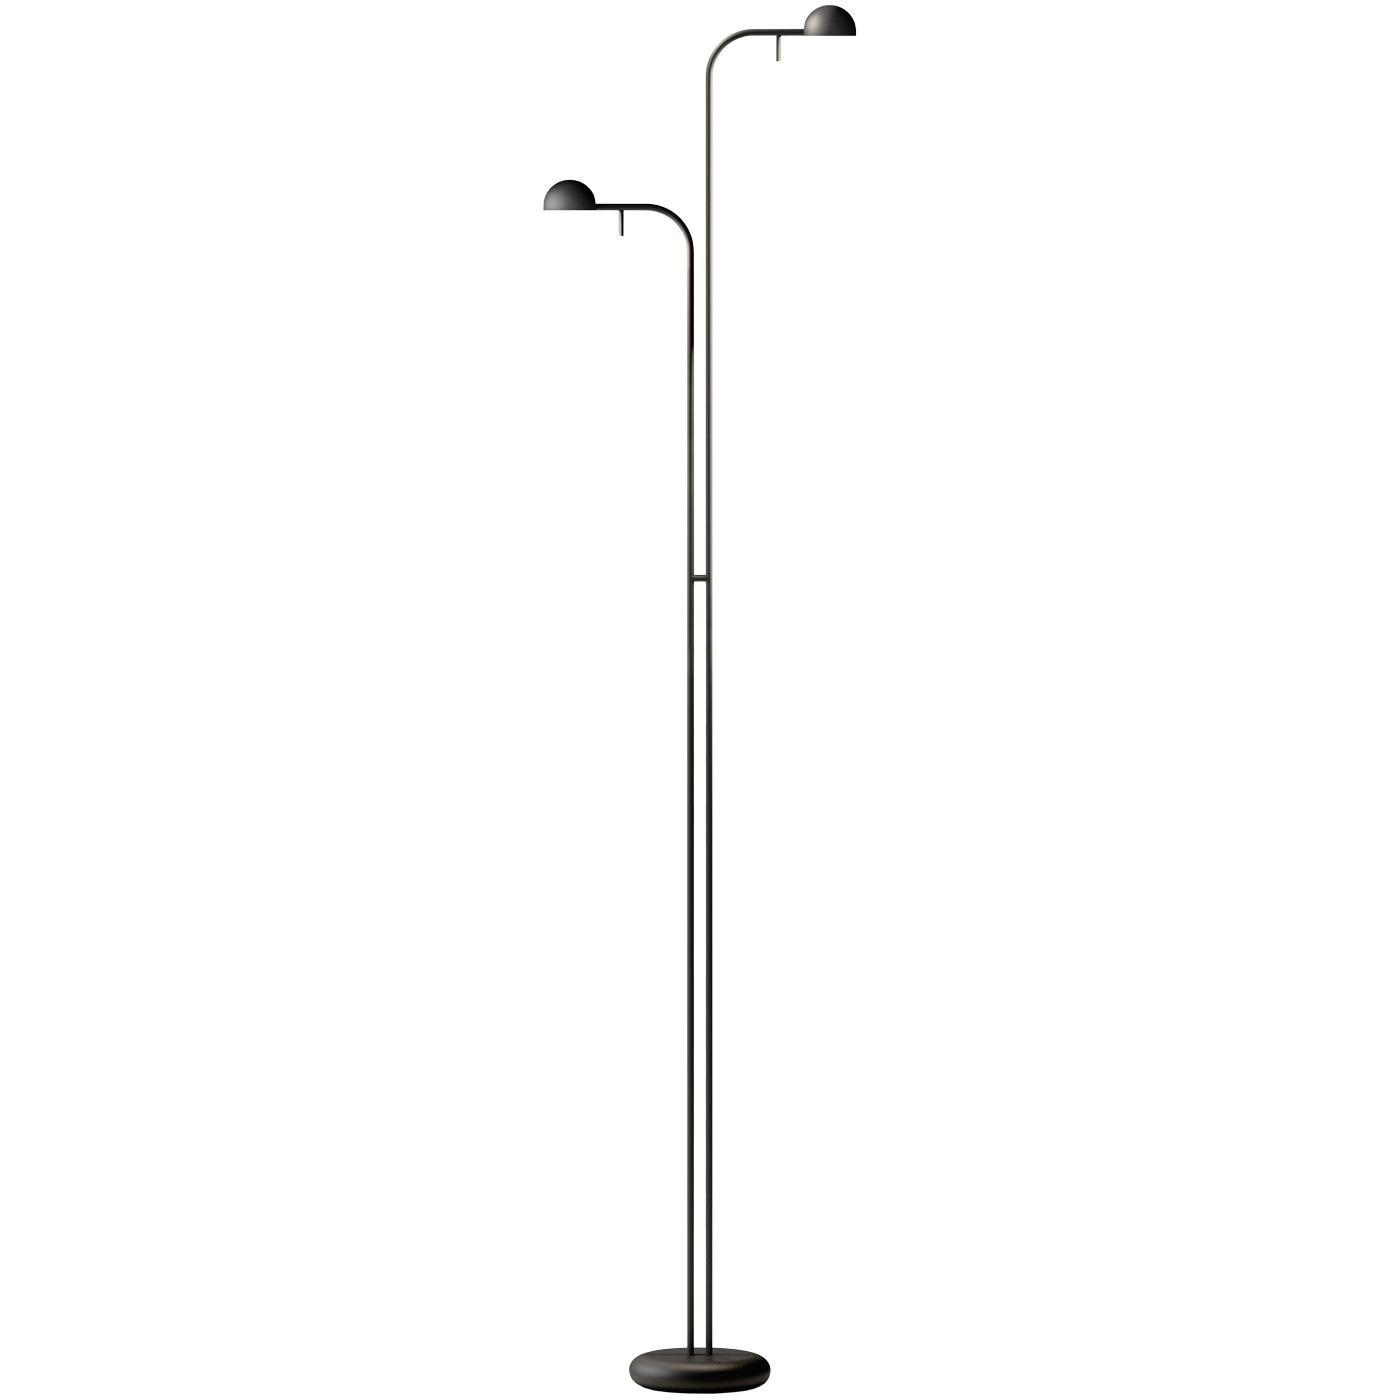 Vibia Pin 1670 Stehleuchte